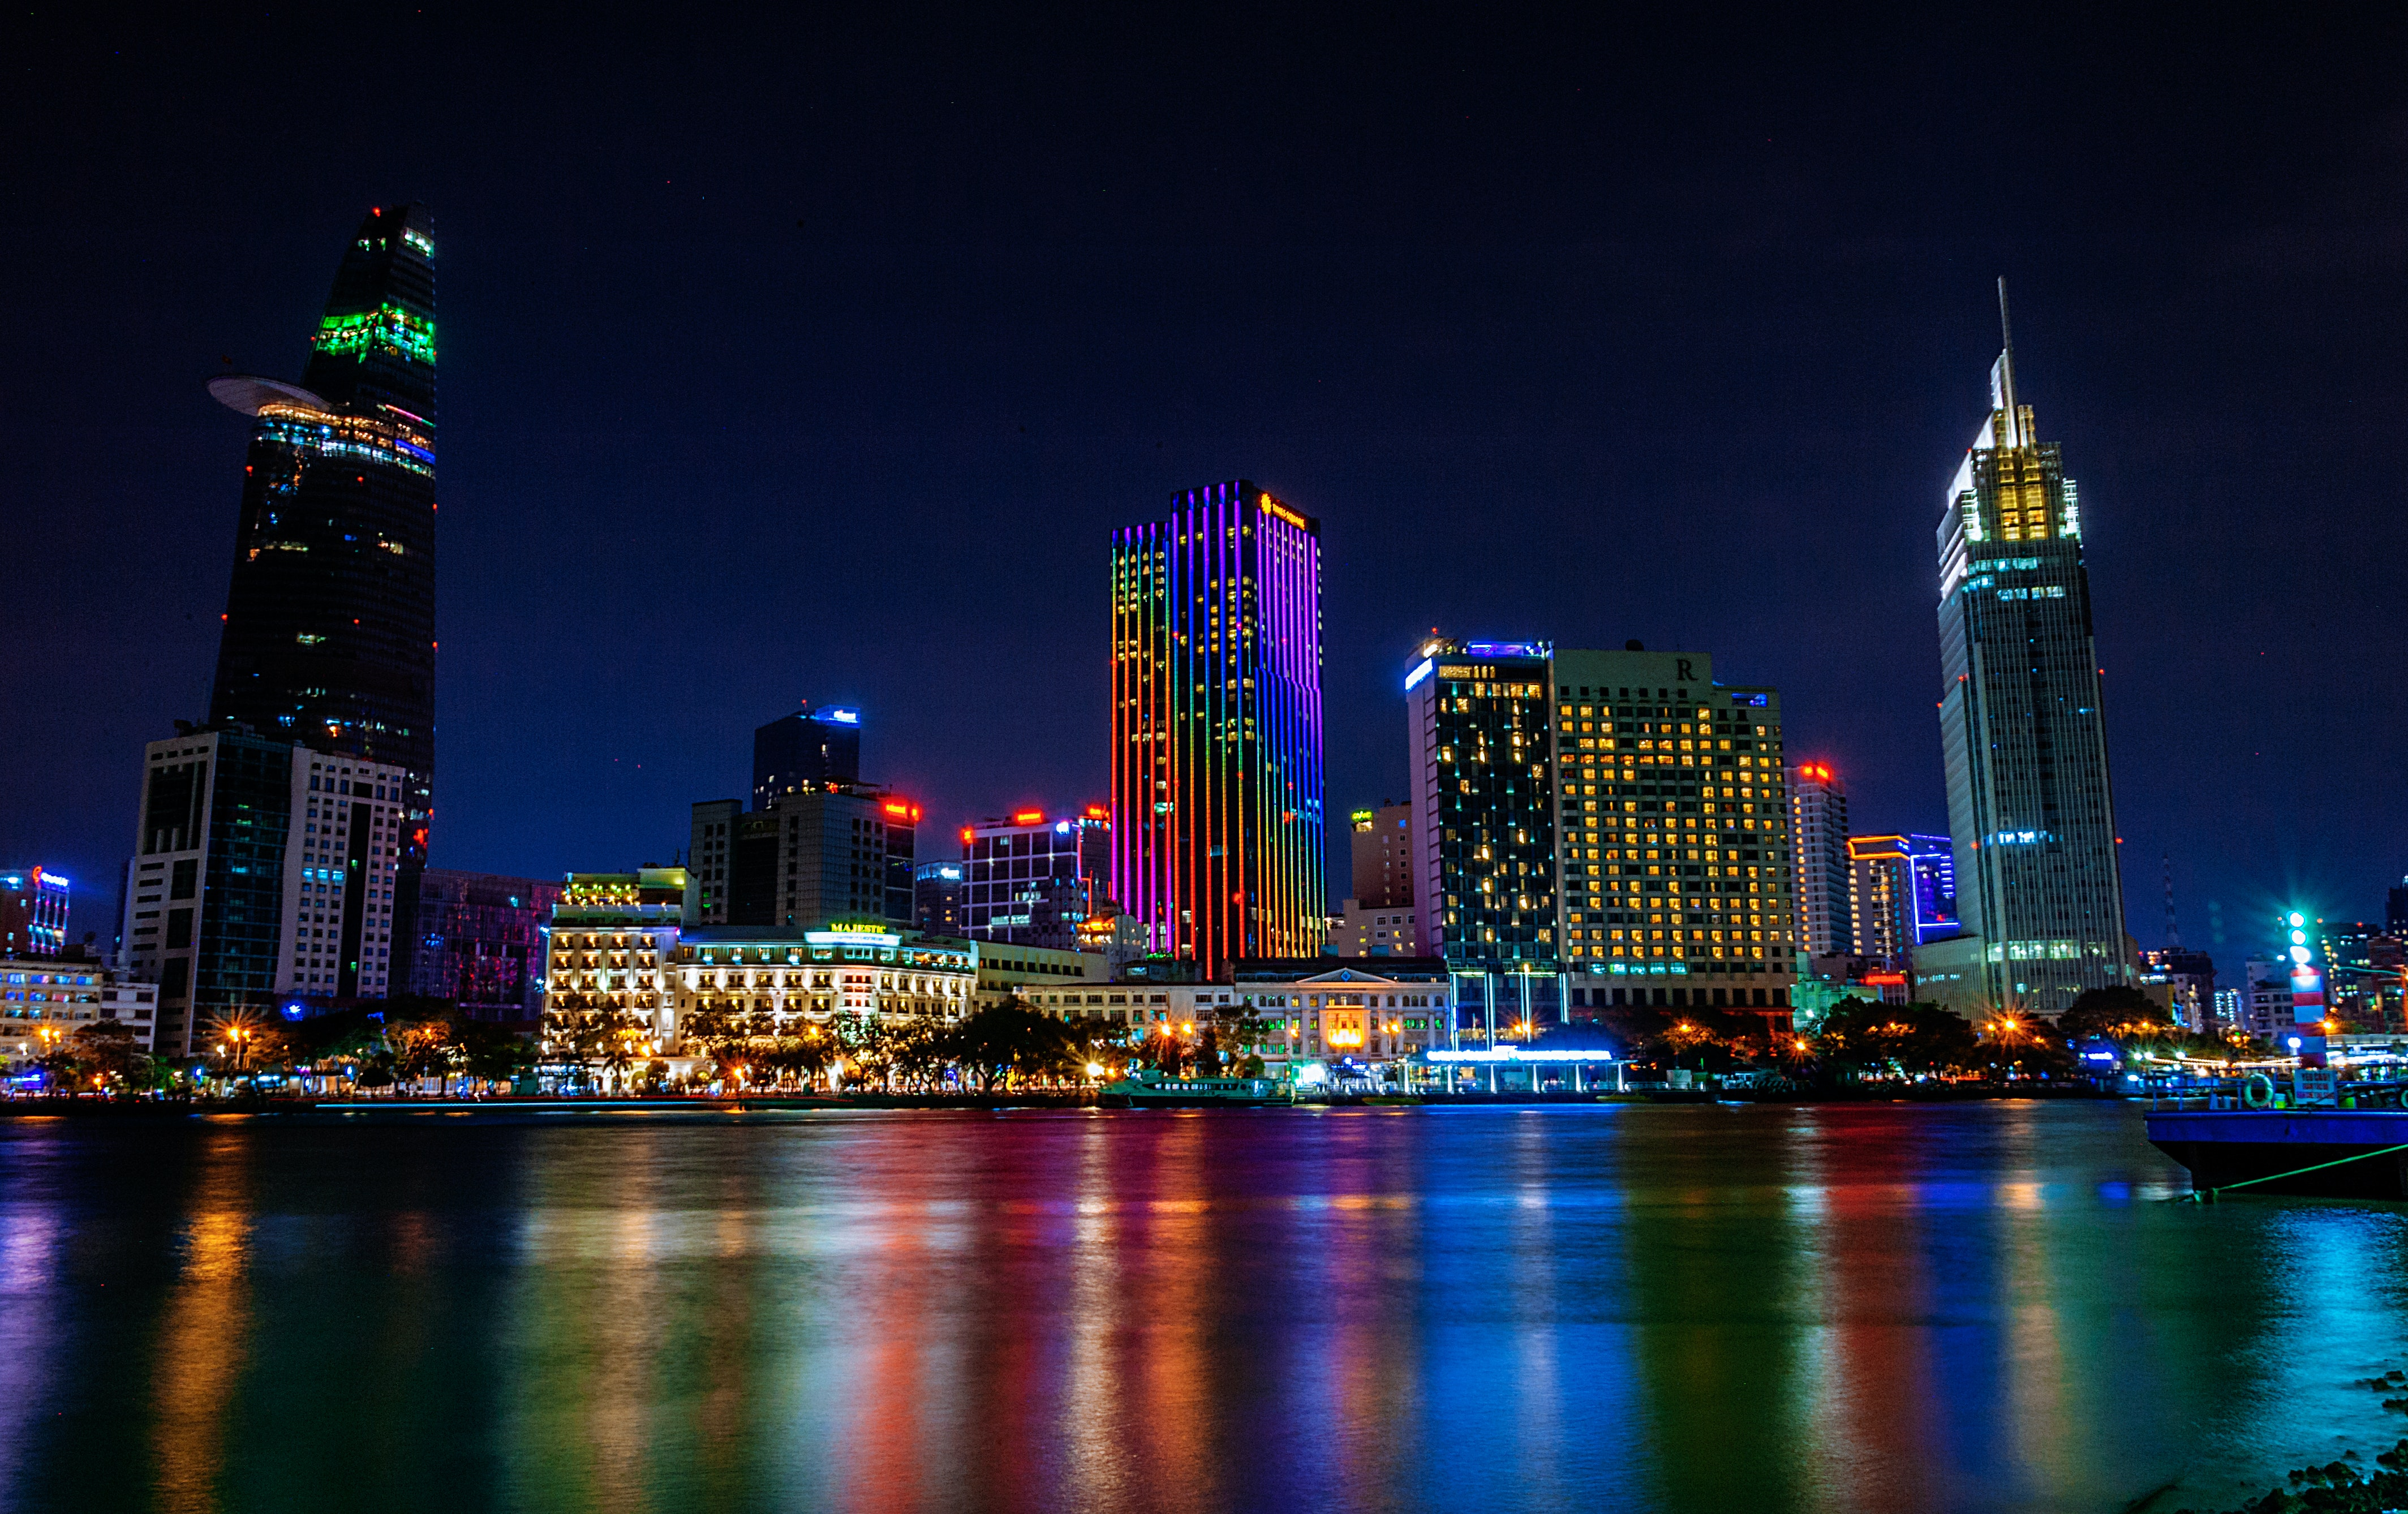 Photographing Cities At Night: 1000+ Beautiful City Lights Photos · Pexels · Free Stock